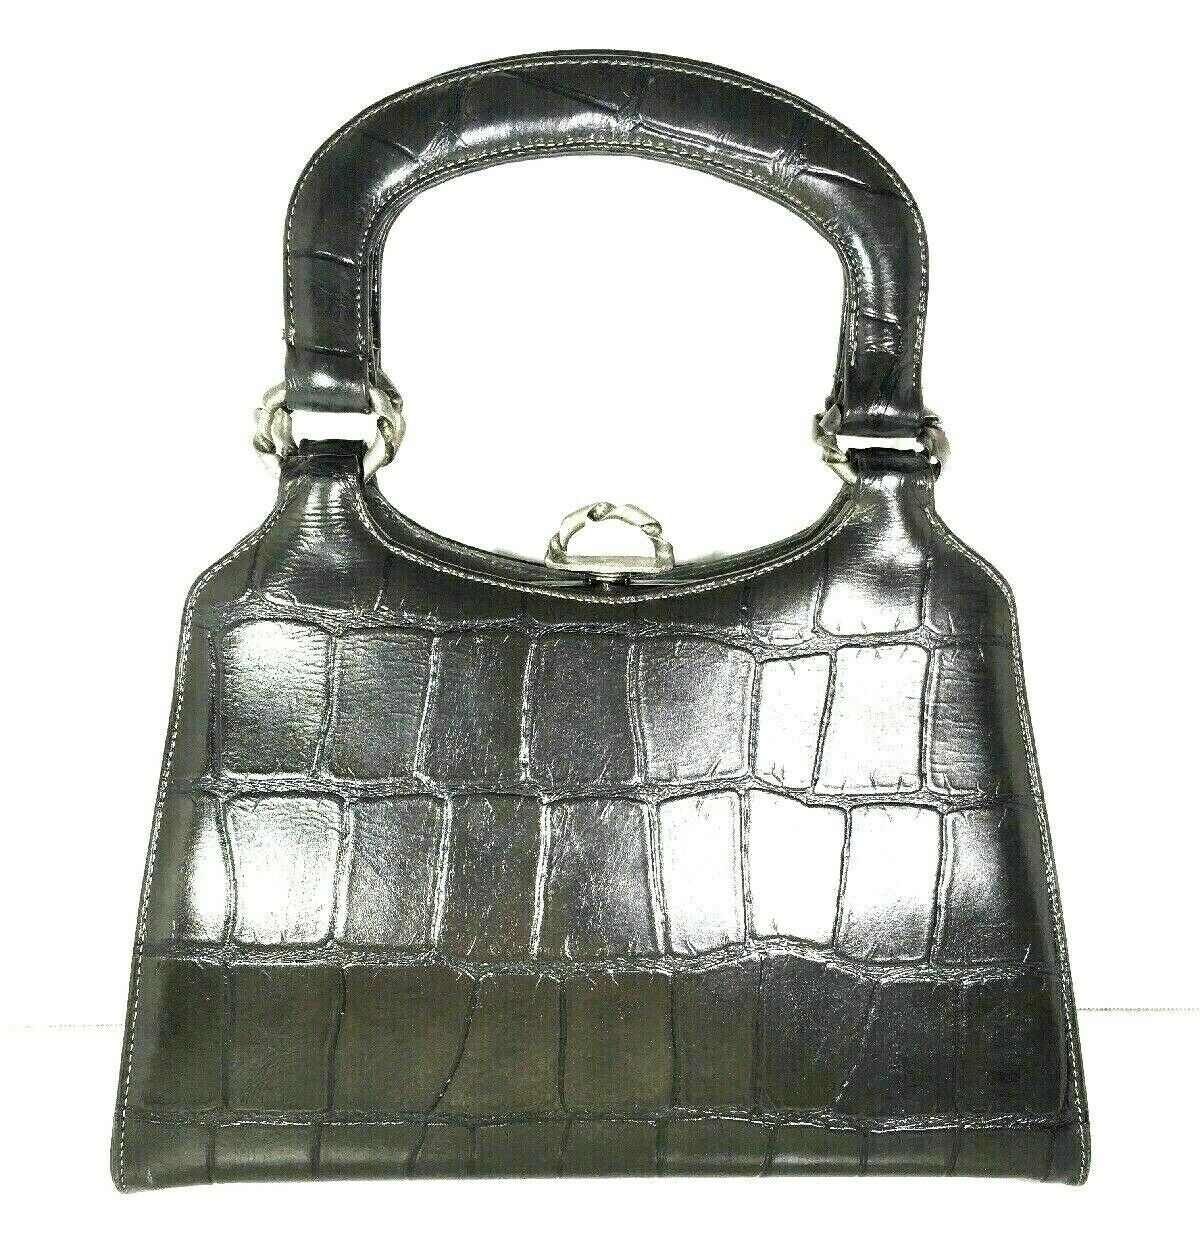 True Vintage Small Handbag Gray Faux Leather Reptile Print